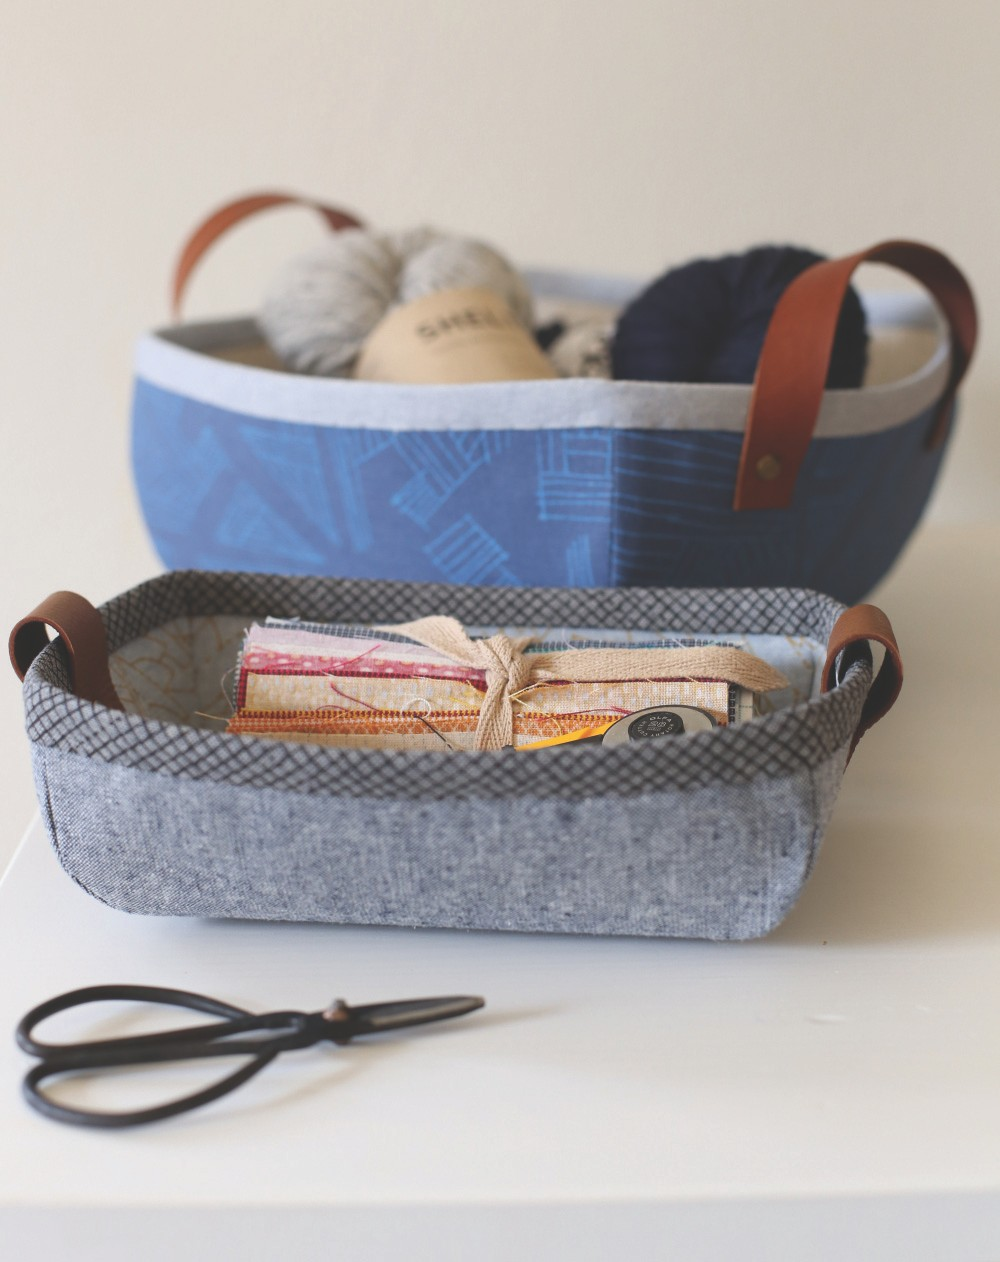 Bag Basket Tutorial and Pattern